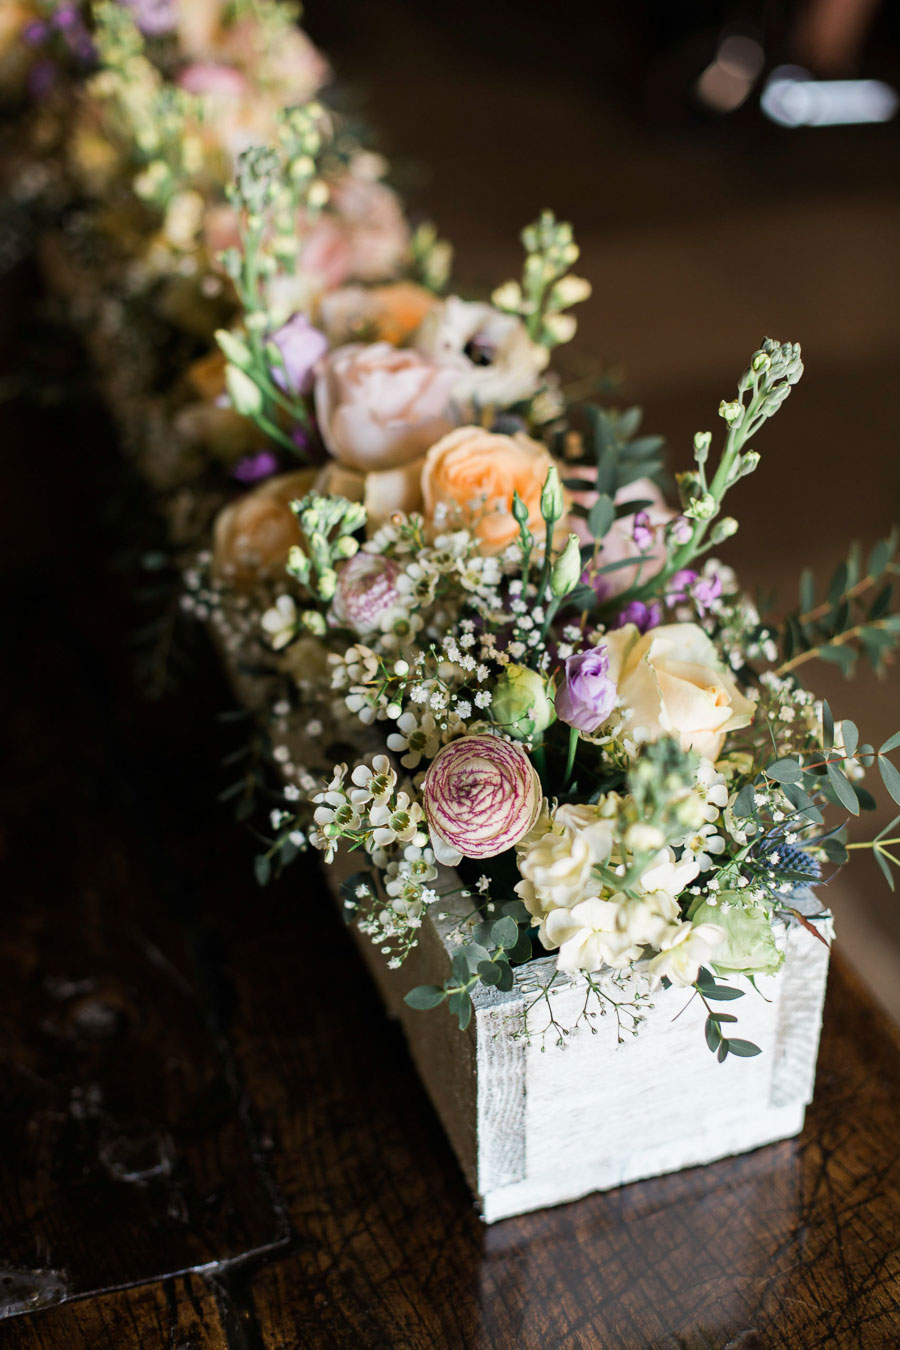 Rustic Wedding With Floral & Pastel Accents0031